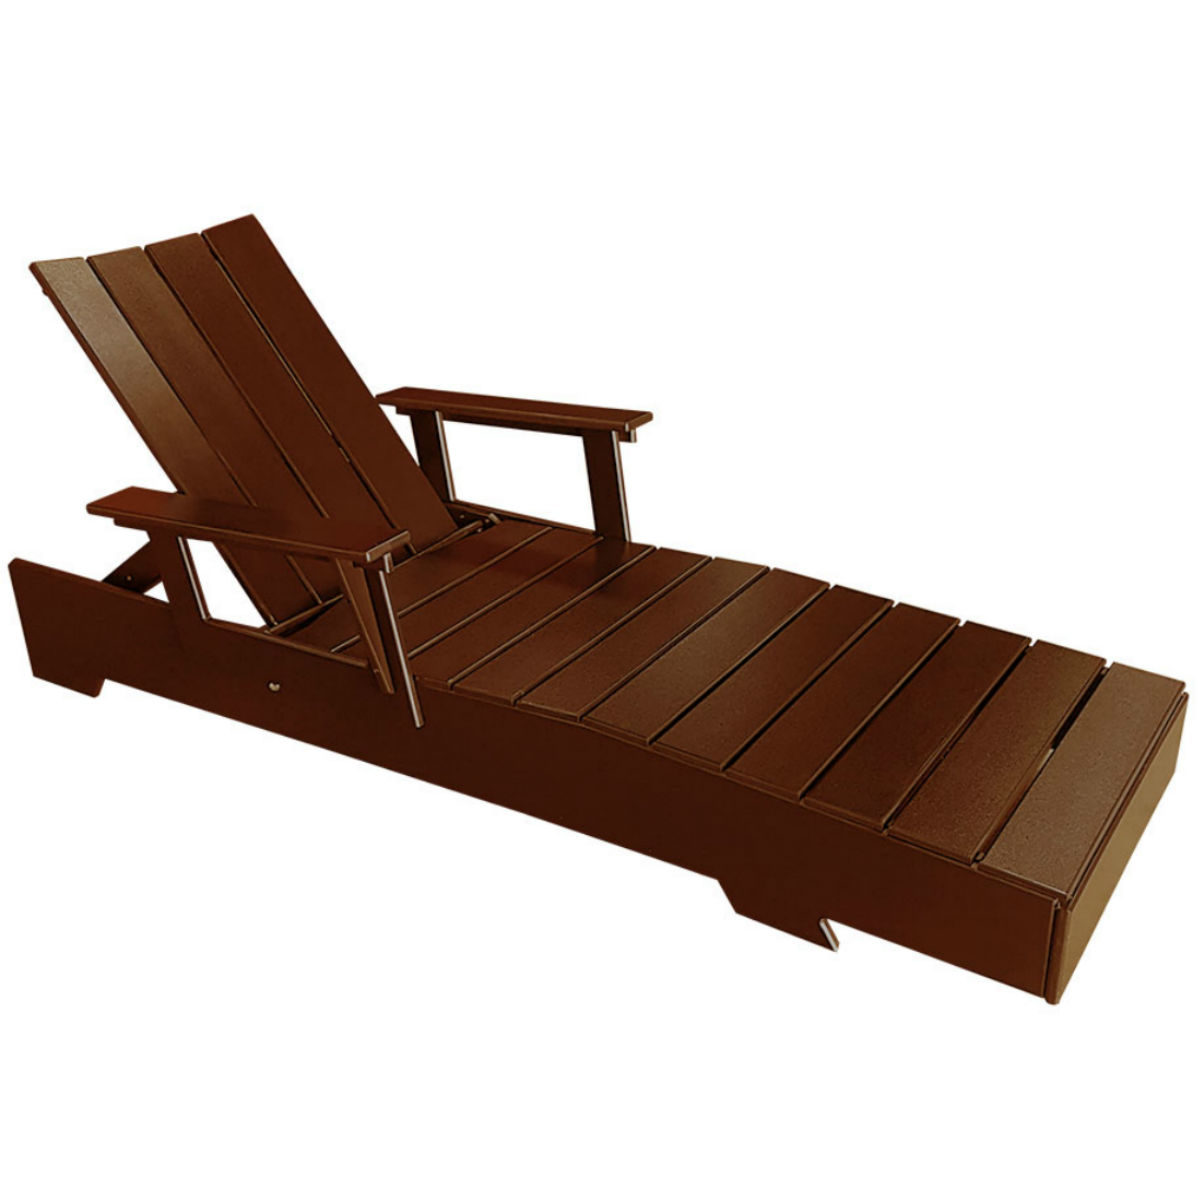 Modern Muskoka Lounge Chair - Chocolate Brown